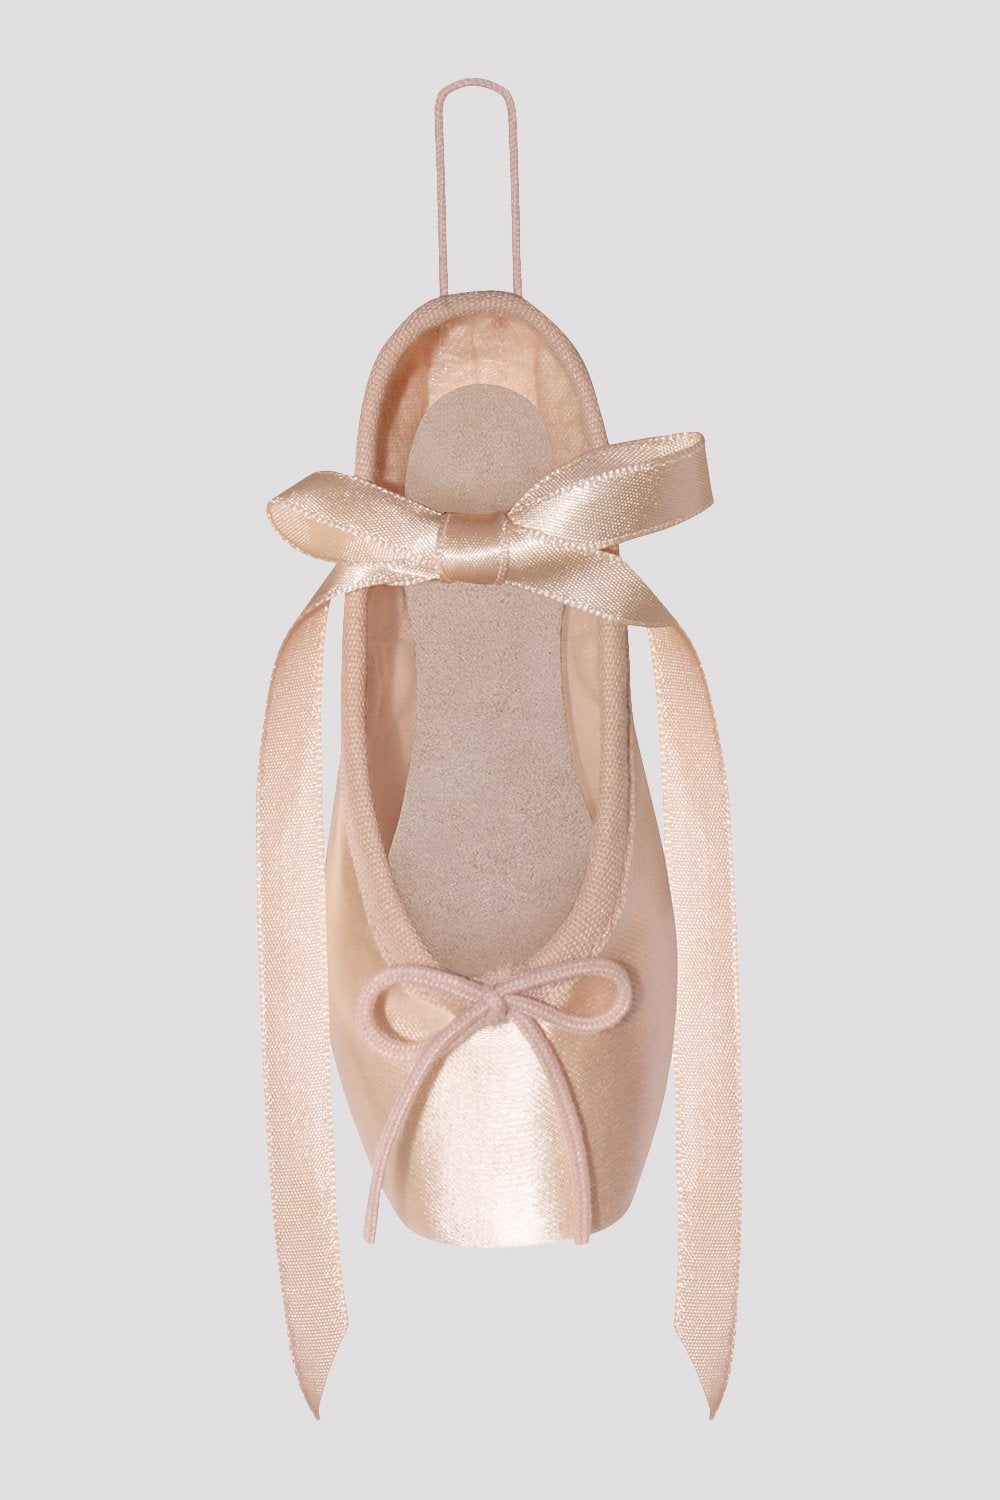 Decorative Pointe Shoe - BLOCH US